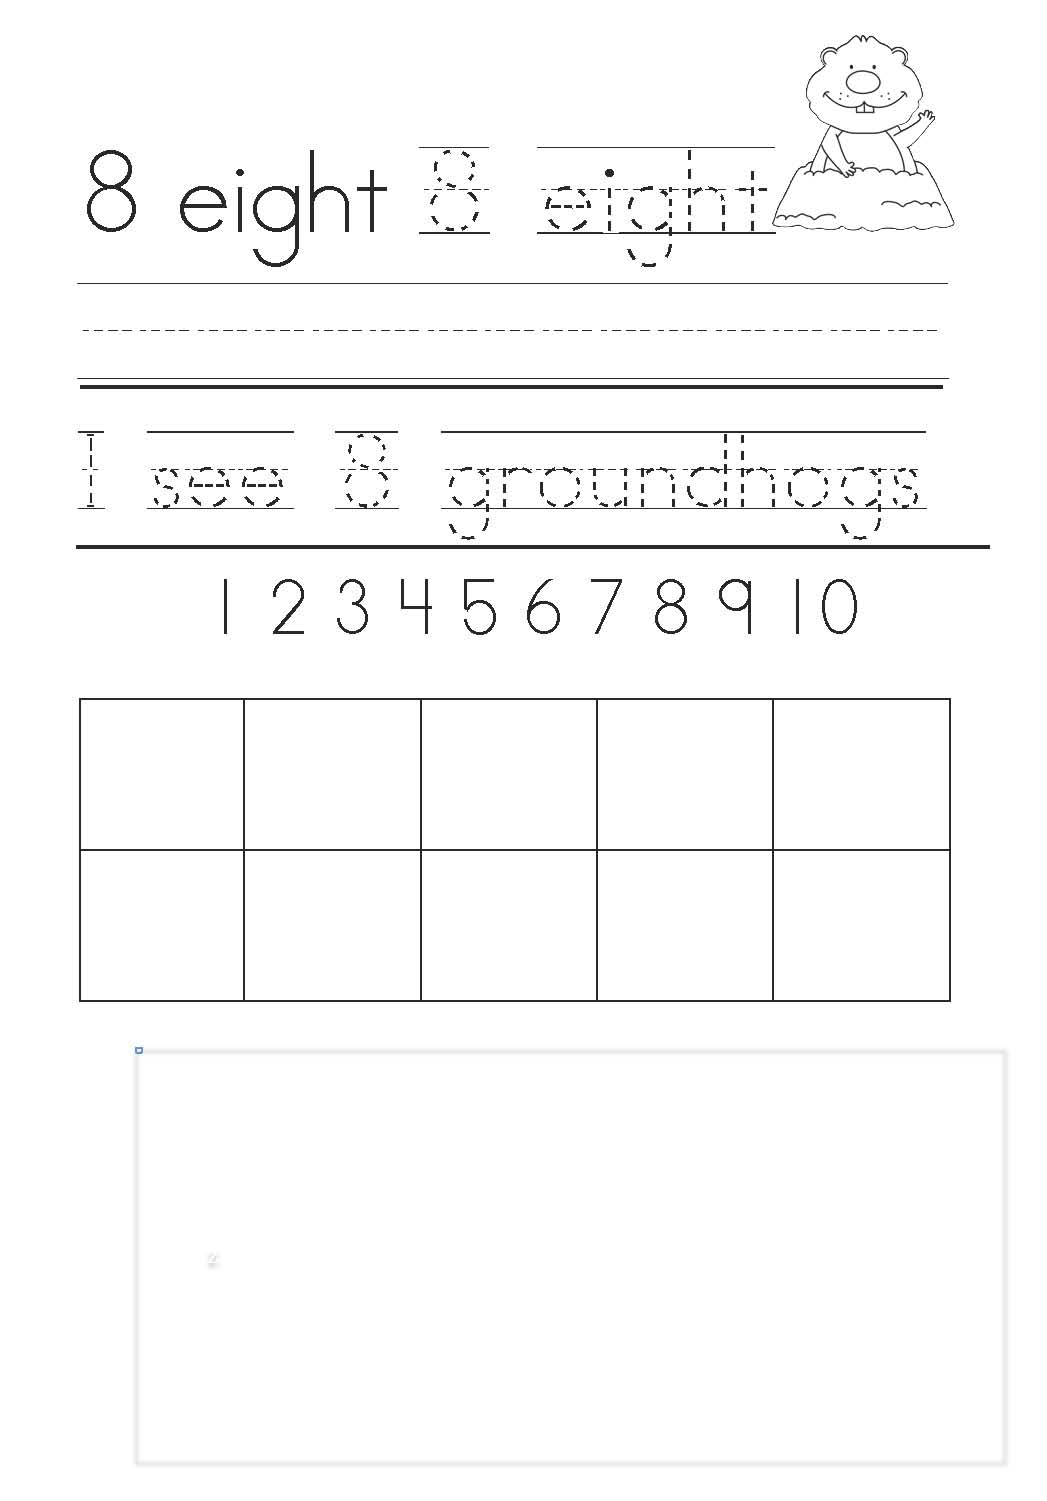 Free common core lessons for kindergarten and 1st grade, pentagon, hexagon, octagon, shape activities, shape booklet, shadow activities, shadow lessons, groundhog lessons, groundhog activities, groundhog easy reader, end punctuation activites, groundhog centers, groundhog writing prompts, graphing groundhogs, groundhog graphs